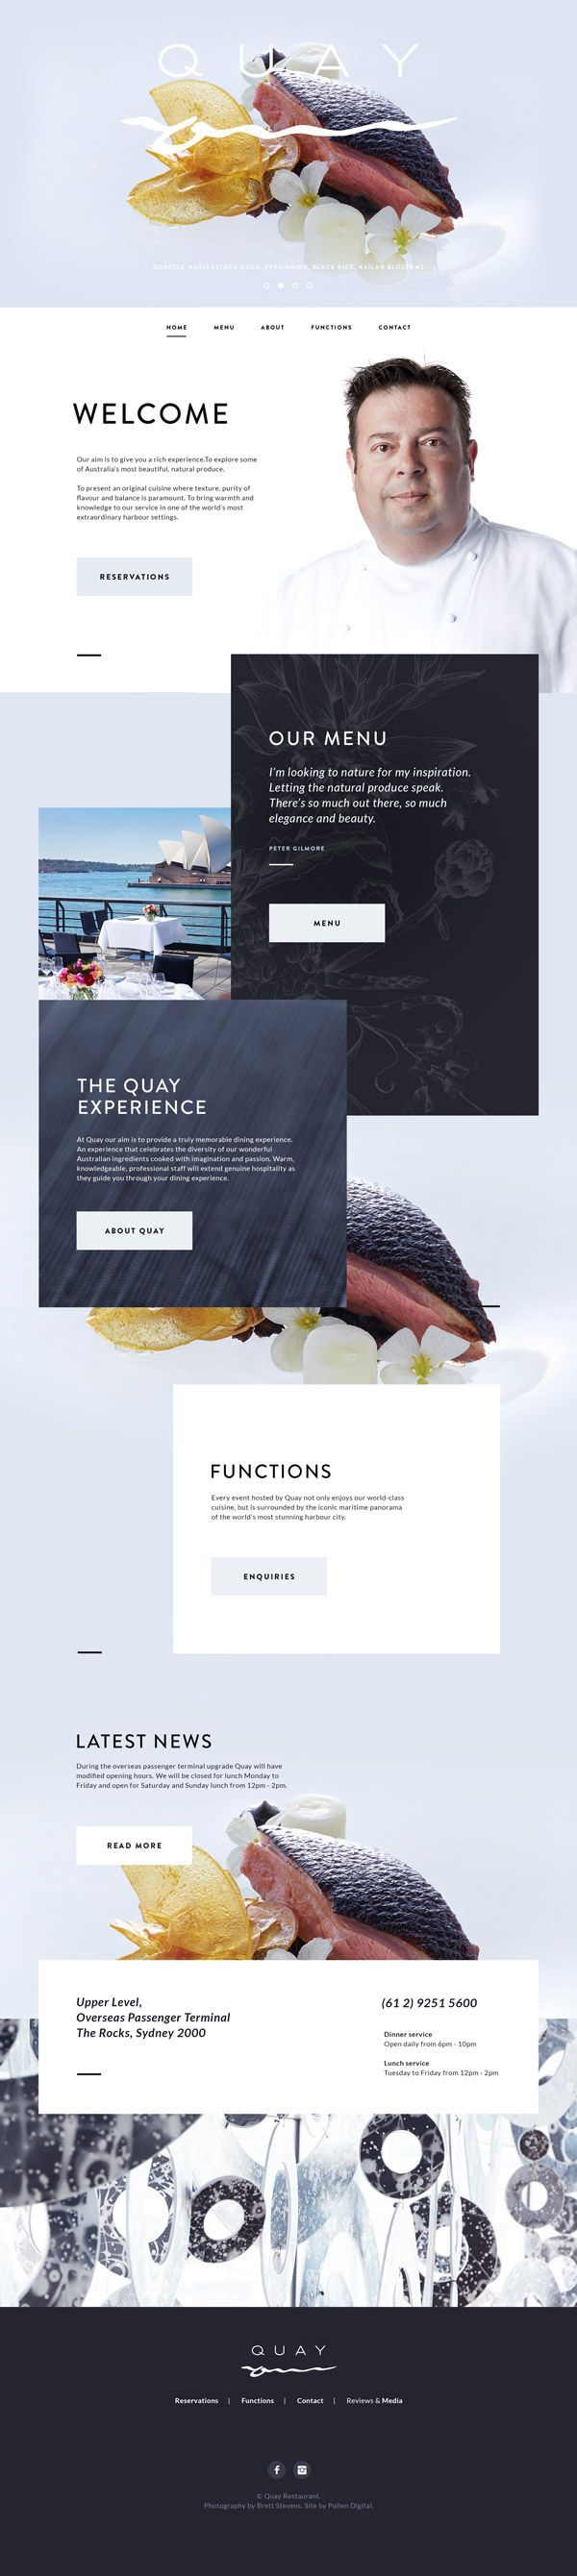 I love the way this is laid out to show full website // Hi Friends, look what I just found on #web #design! Make sure to follow us @moirestudiosjkt to see more pins like this | Moire Studios is a thriving website and graphic design studio based in Jakarta, Indonesia.